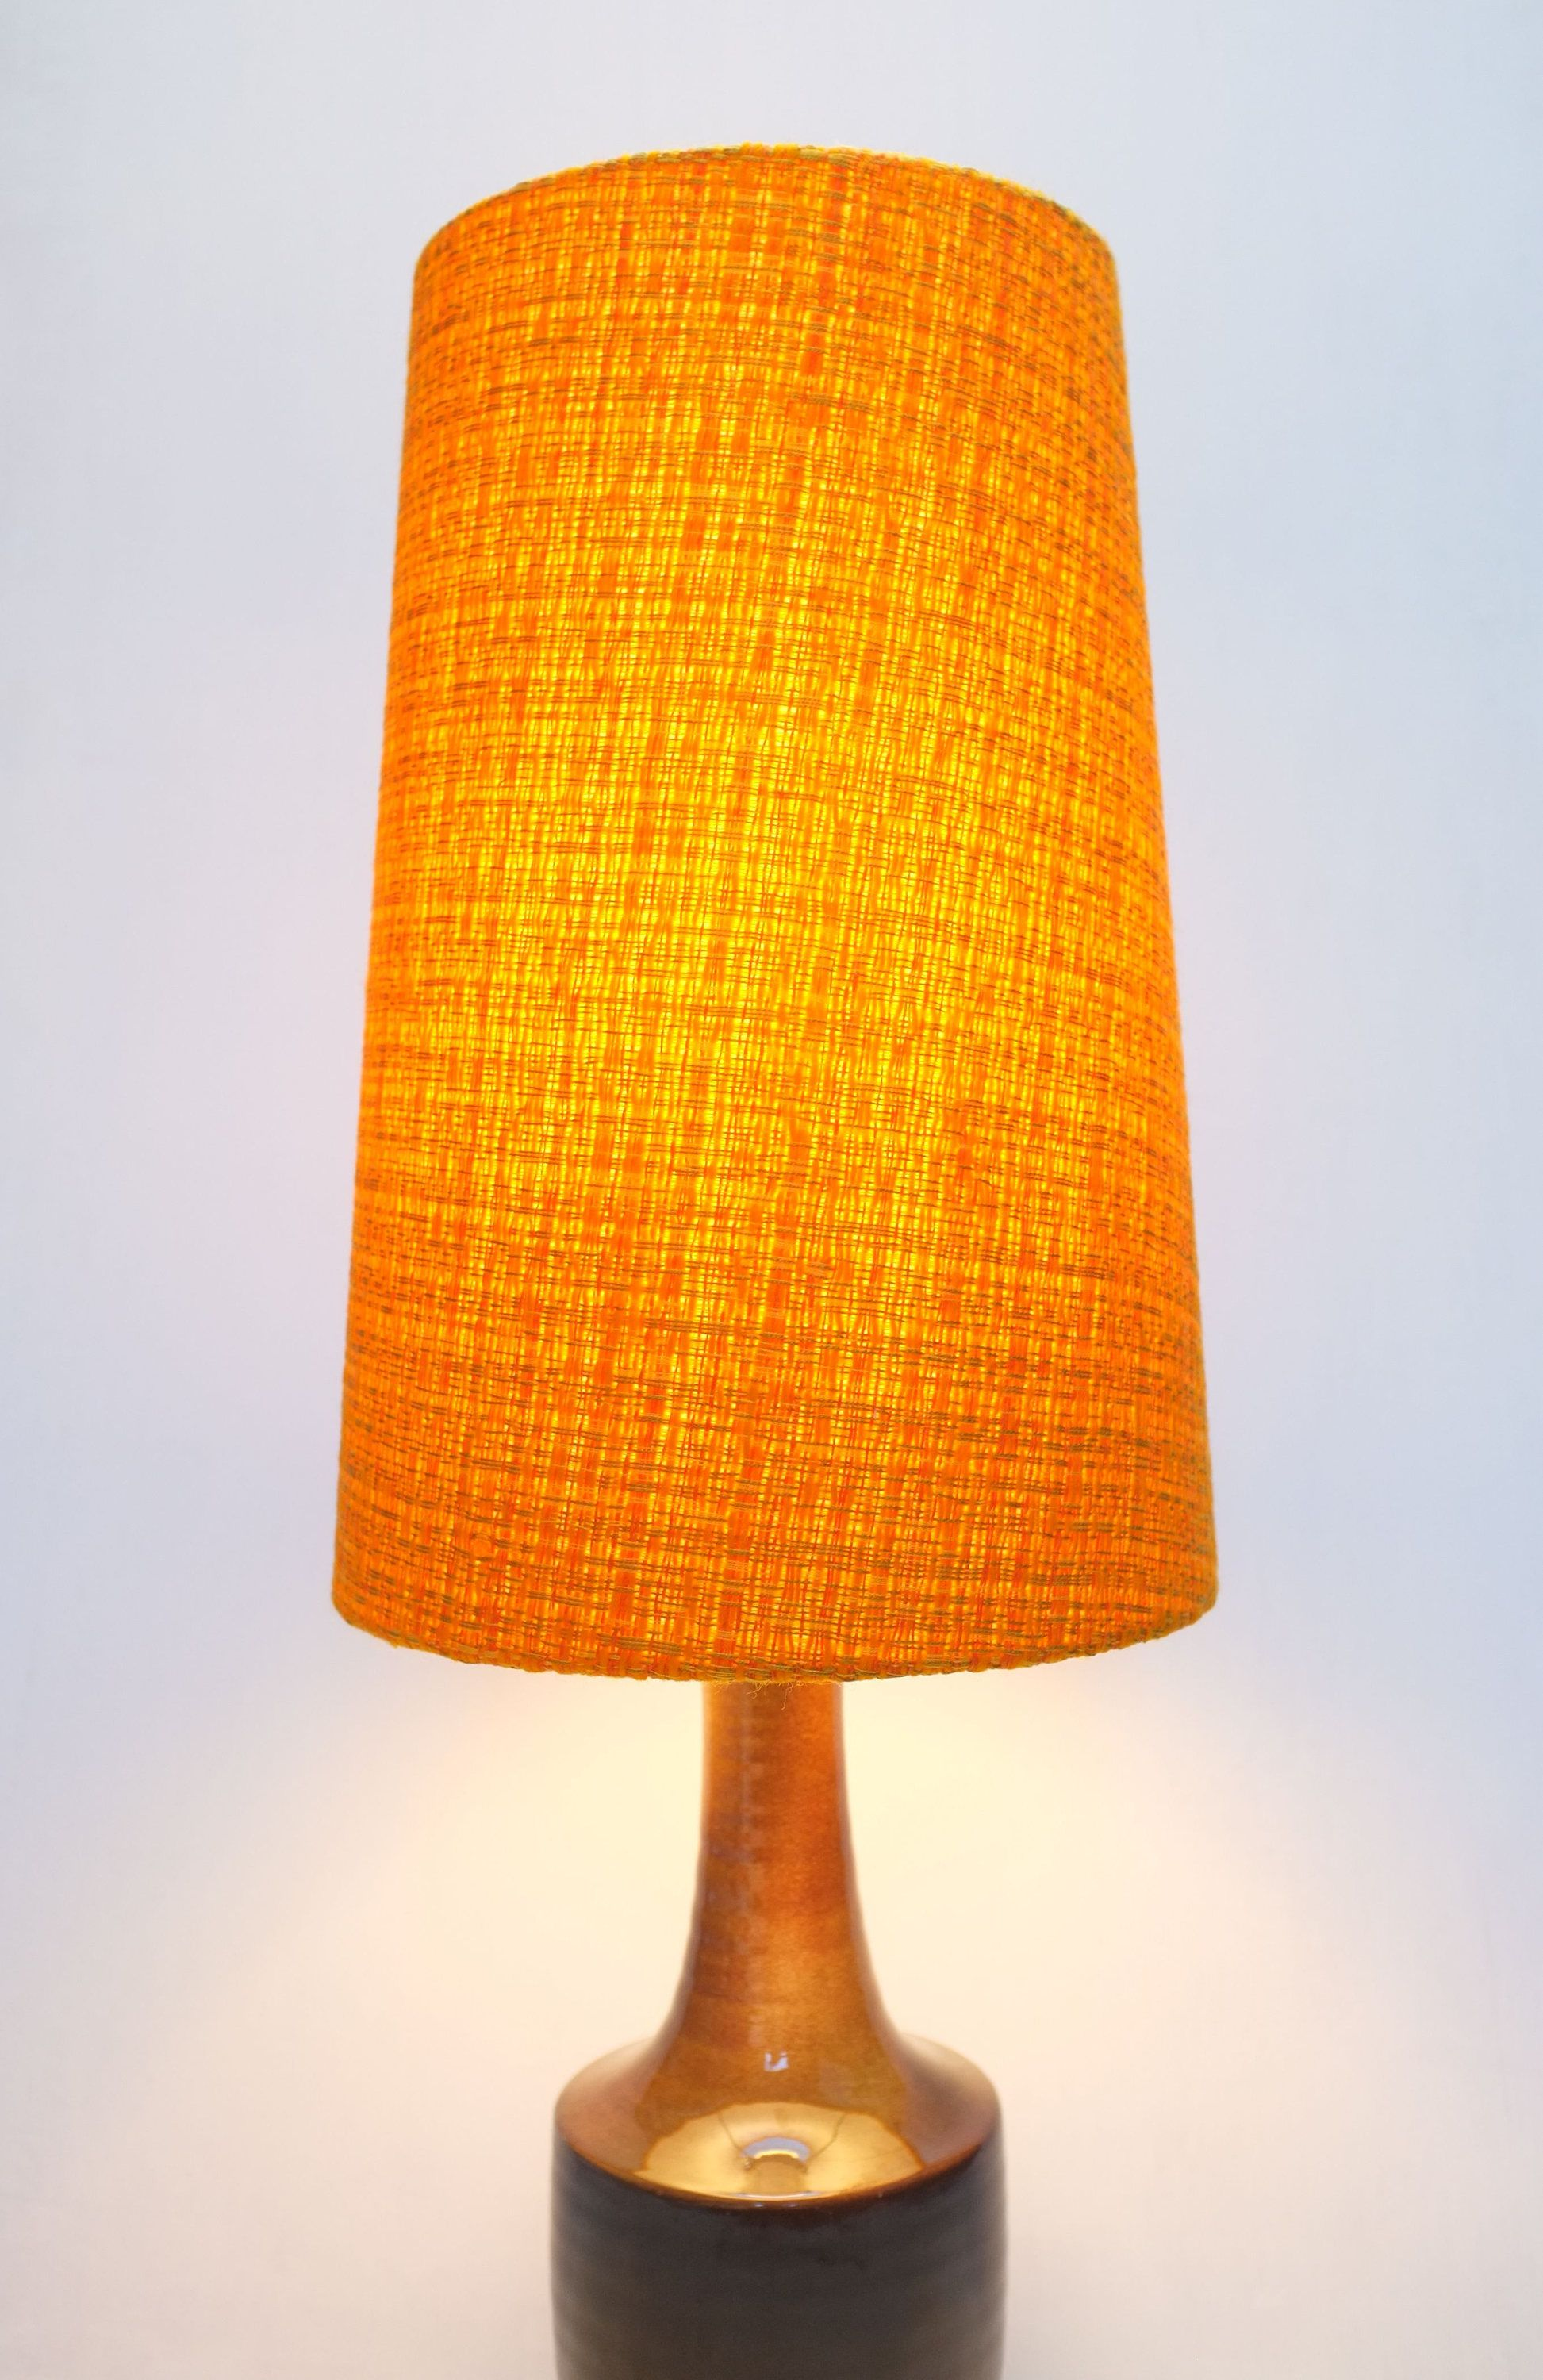 Retro Lampshade Original Fabric Extra Tall Conical 60s 70s Orange Gold Vintage By Poppetretro On Etsy